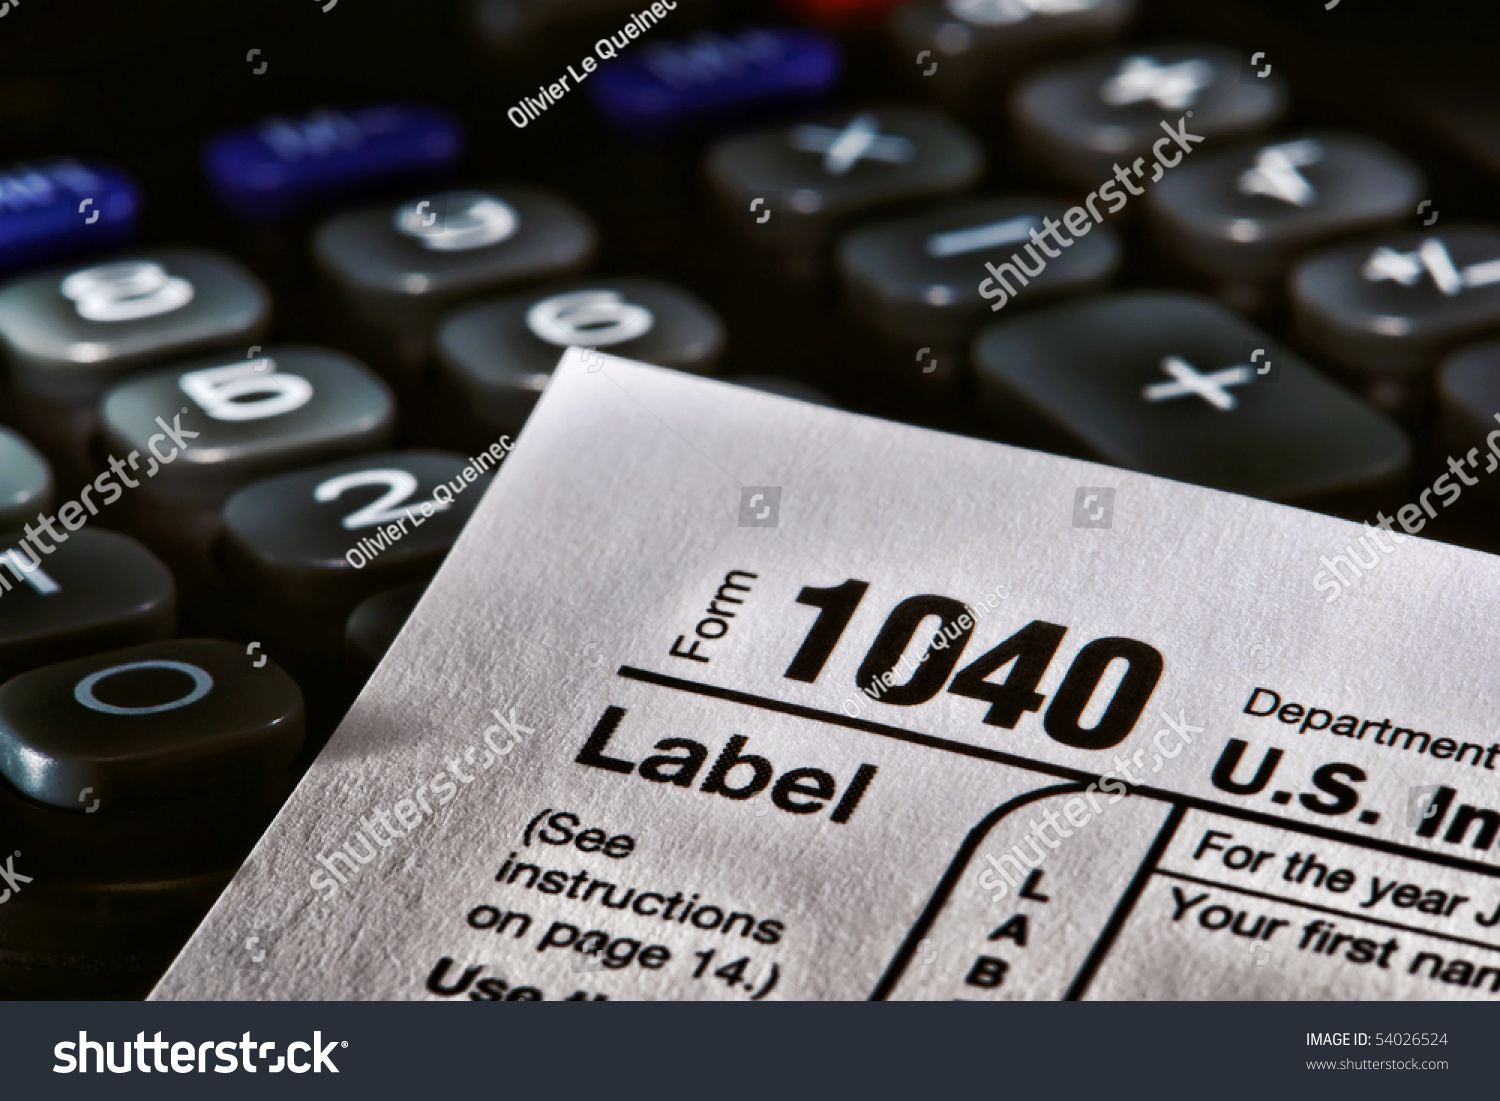 American irs internal revenue service income tax form 1040 for 1040 tax table calculator